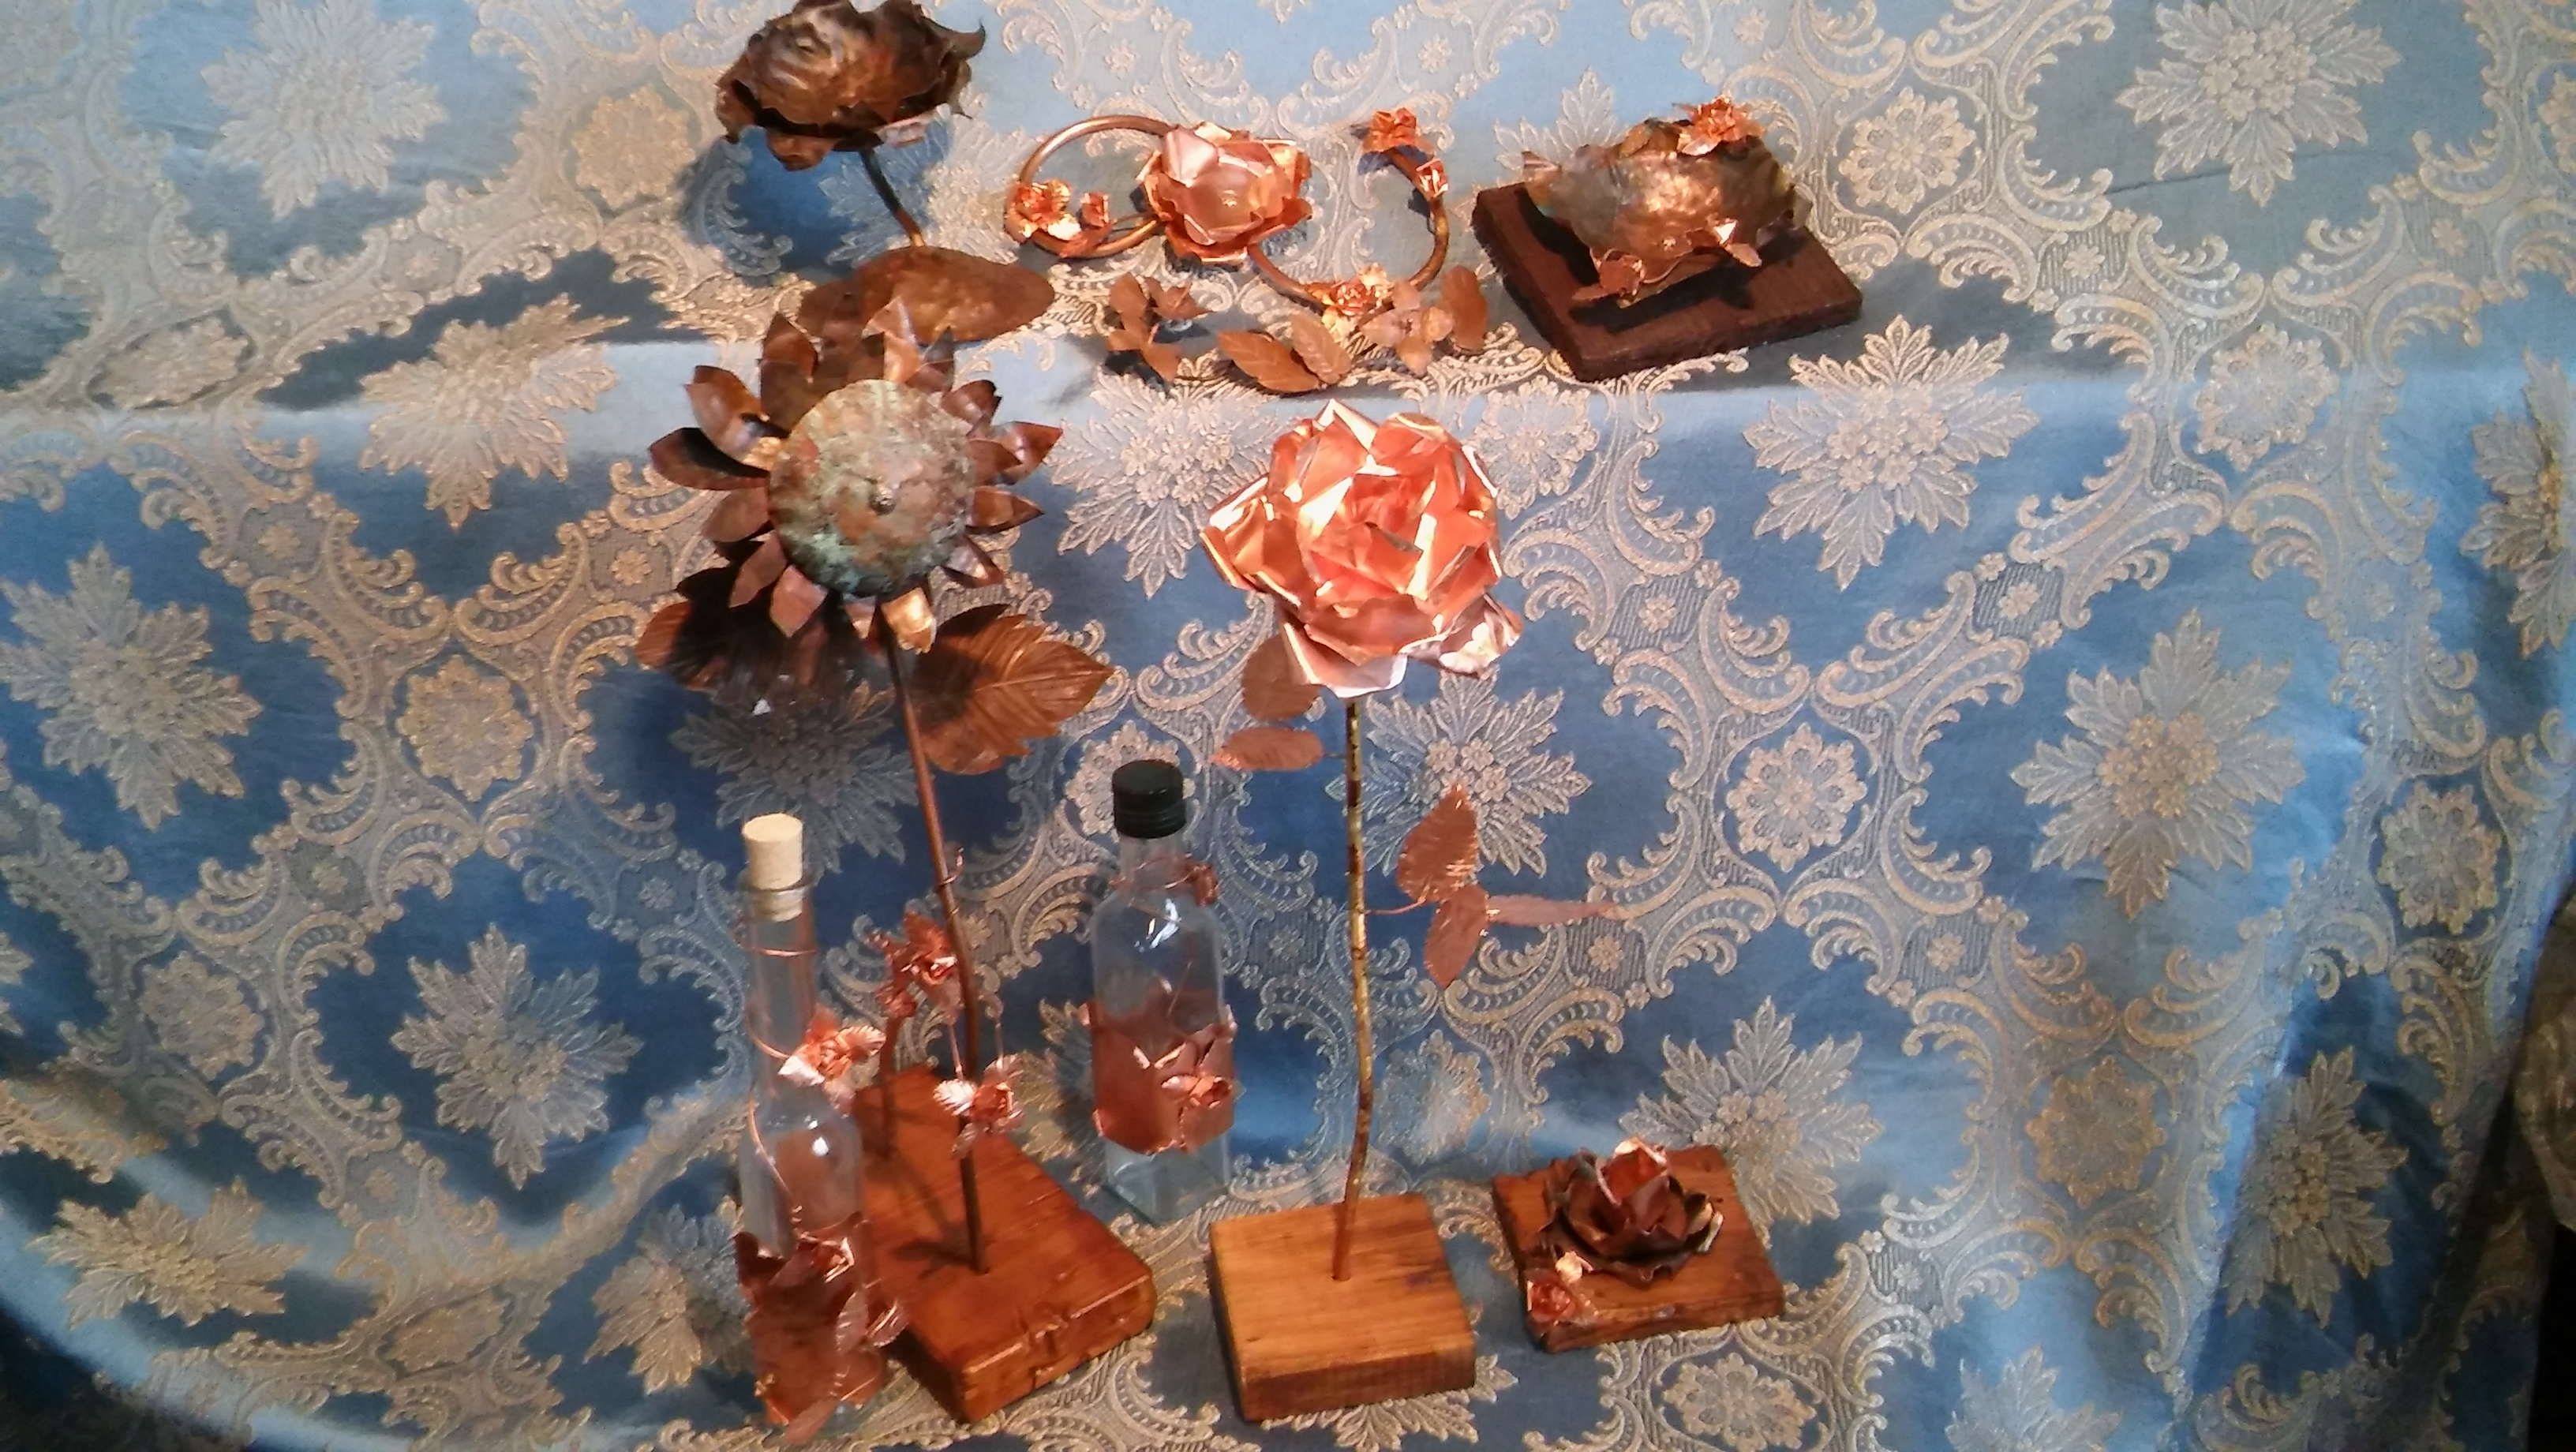 Genio Italiano's basket of copper handmade items